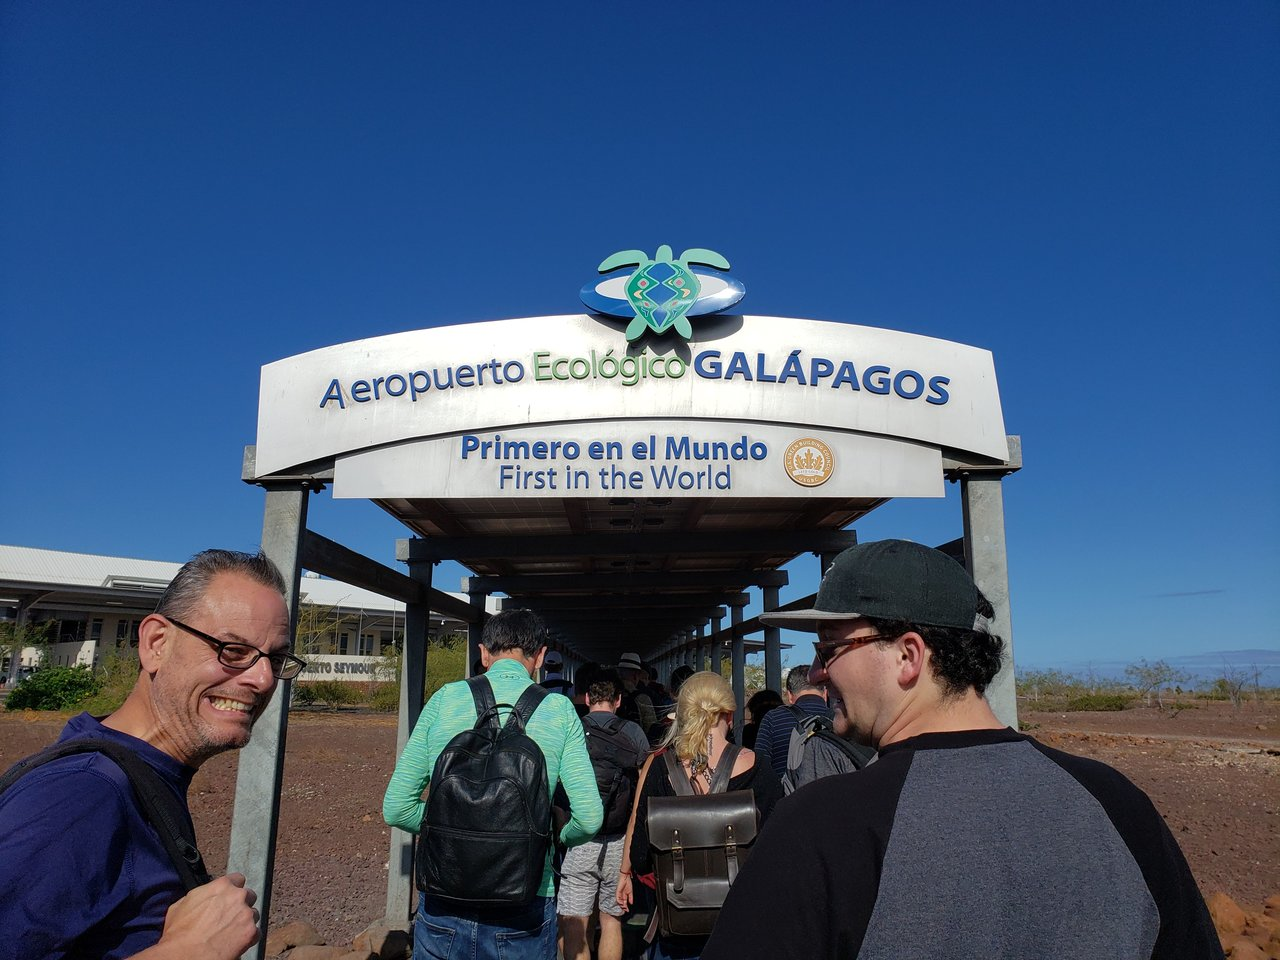 Arriving in Galapagos! | Photo taken by Peter S